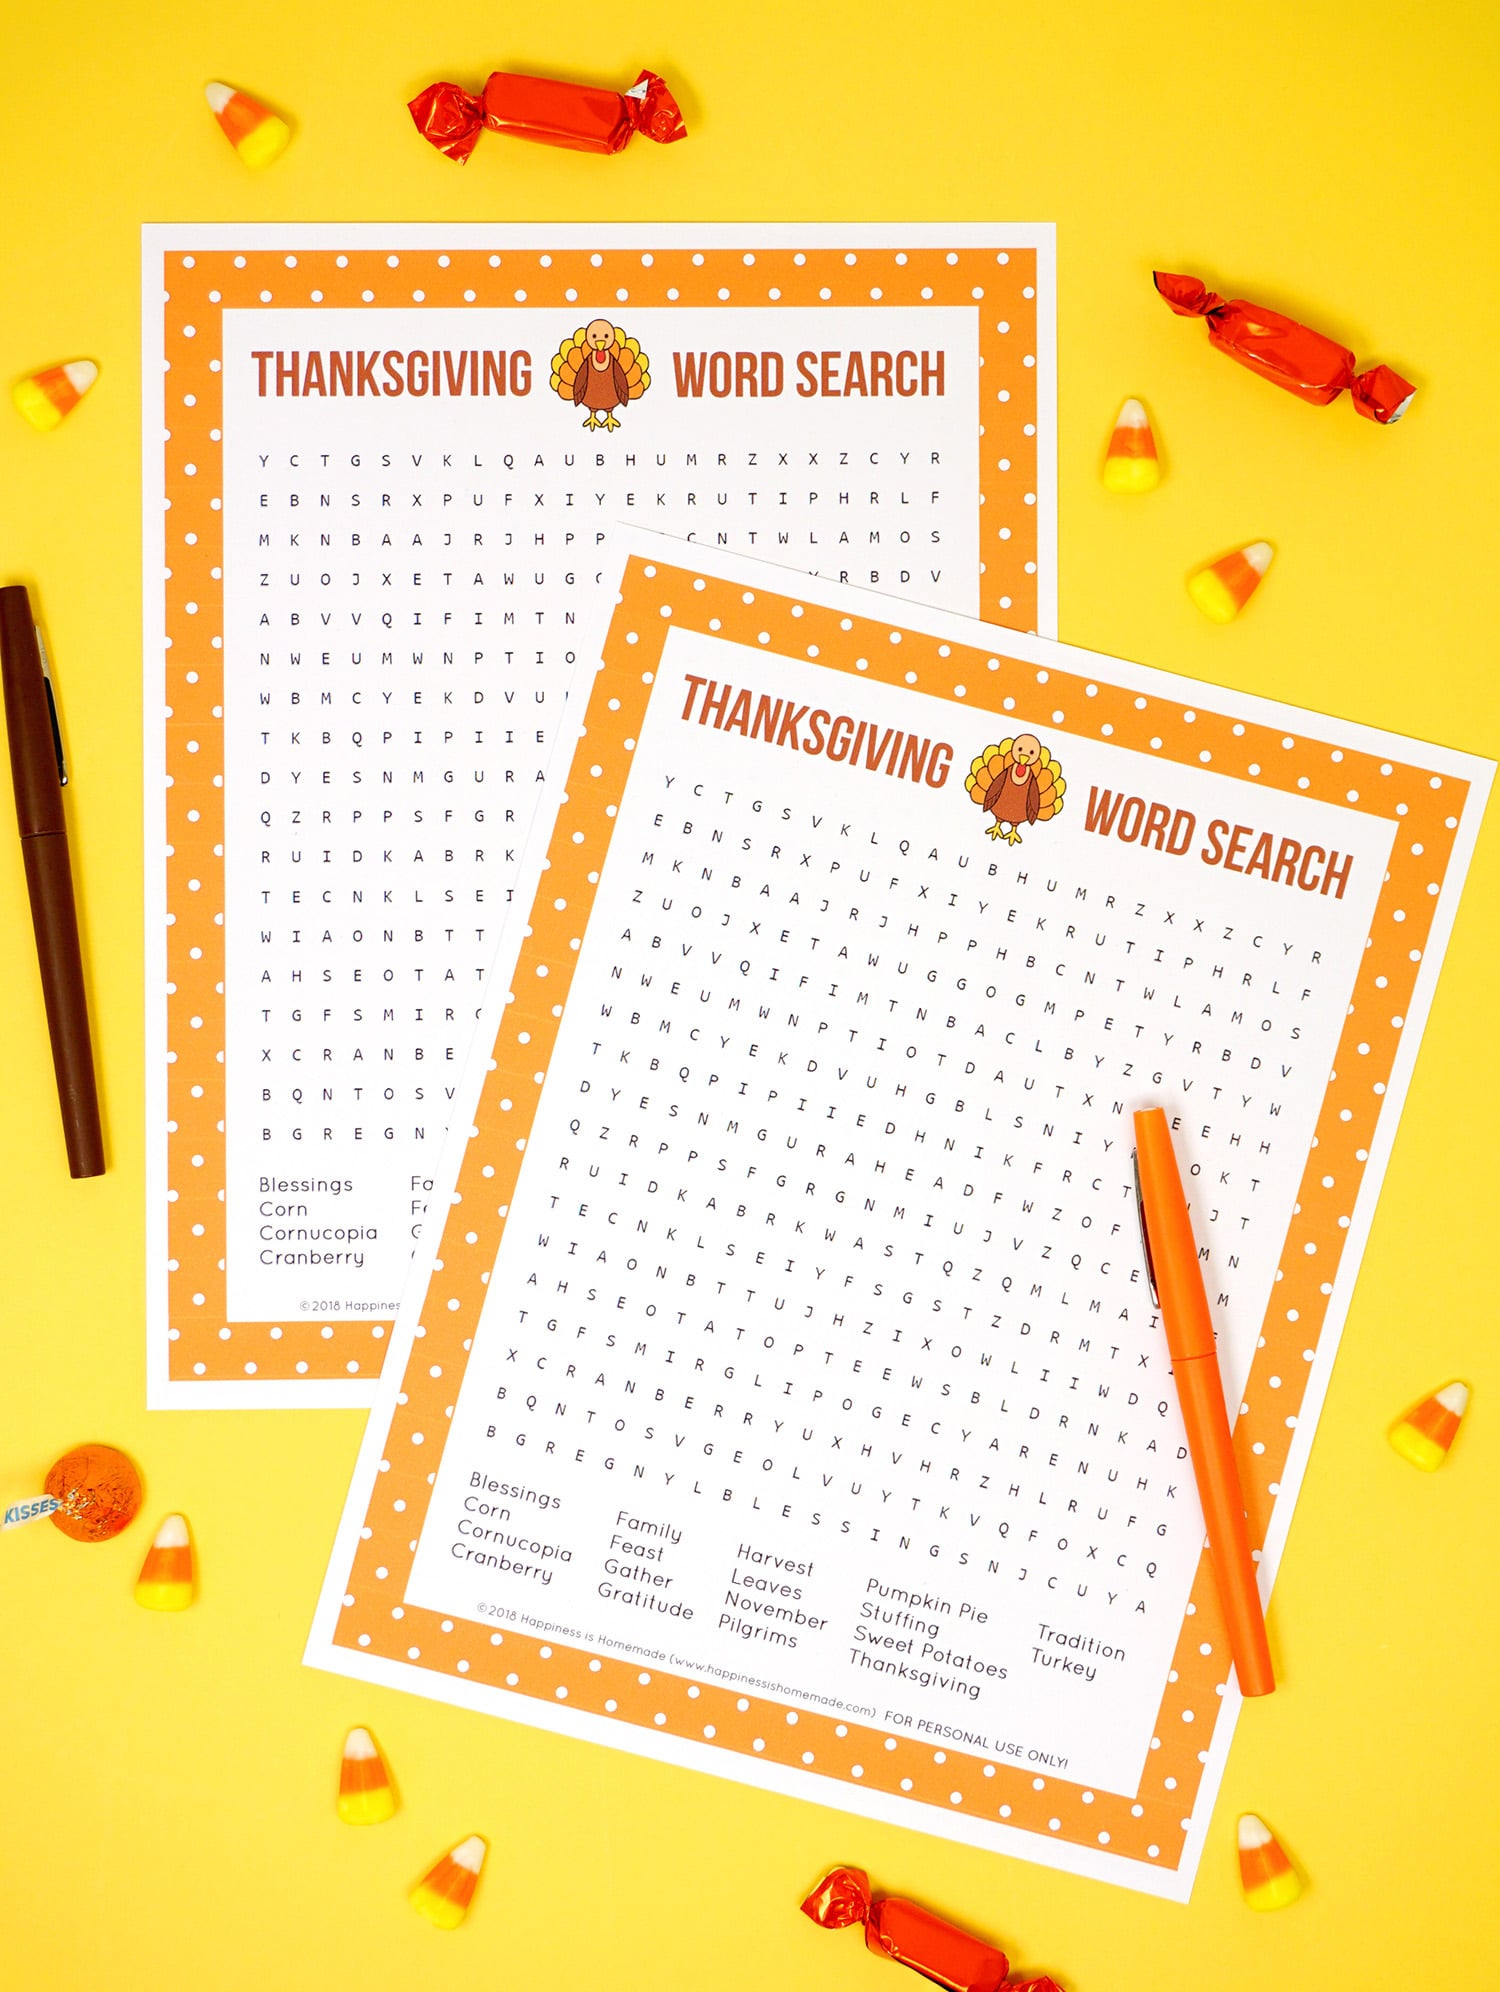 Thanksgiving Word Search Printable - Happiness is Homemade